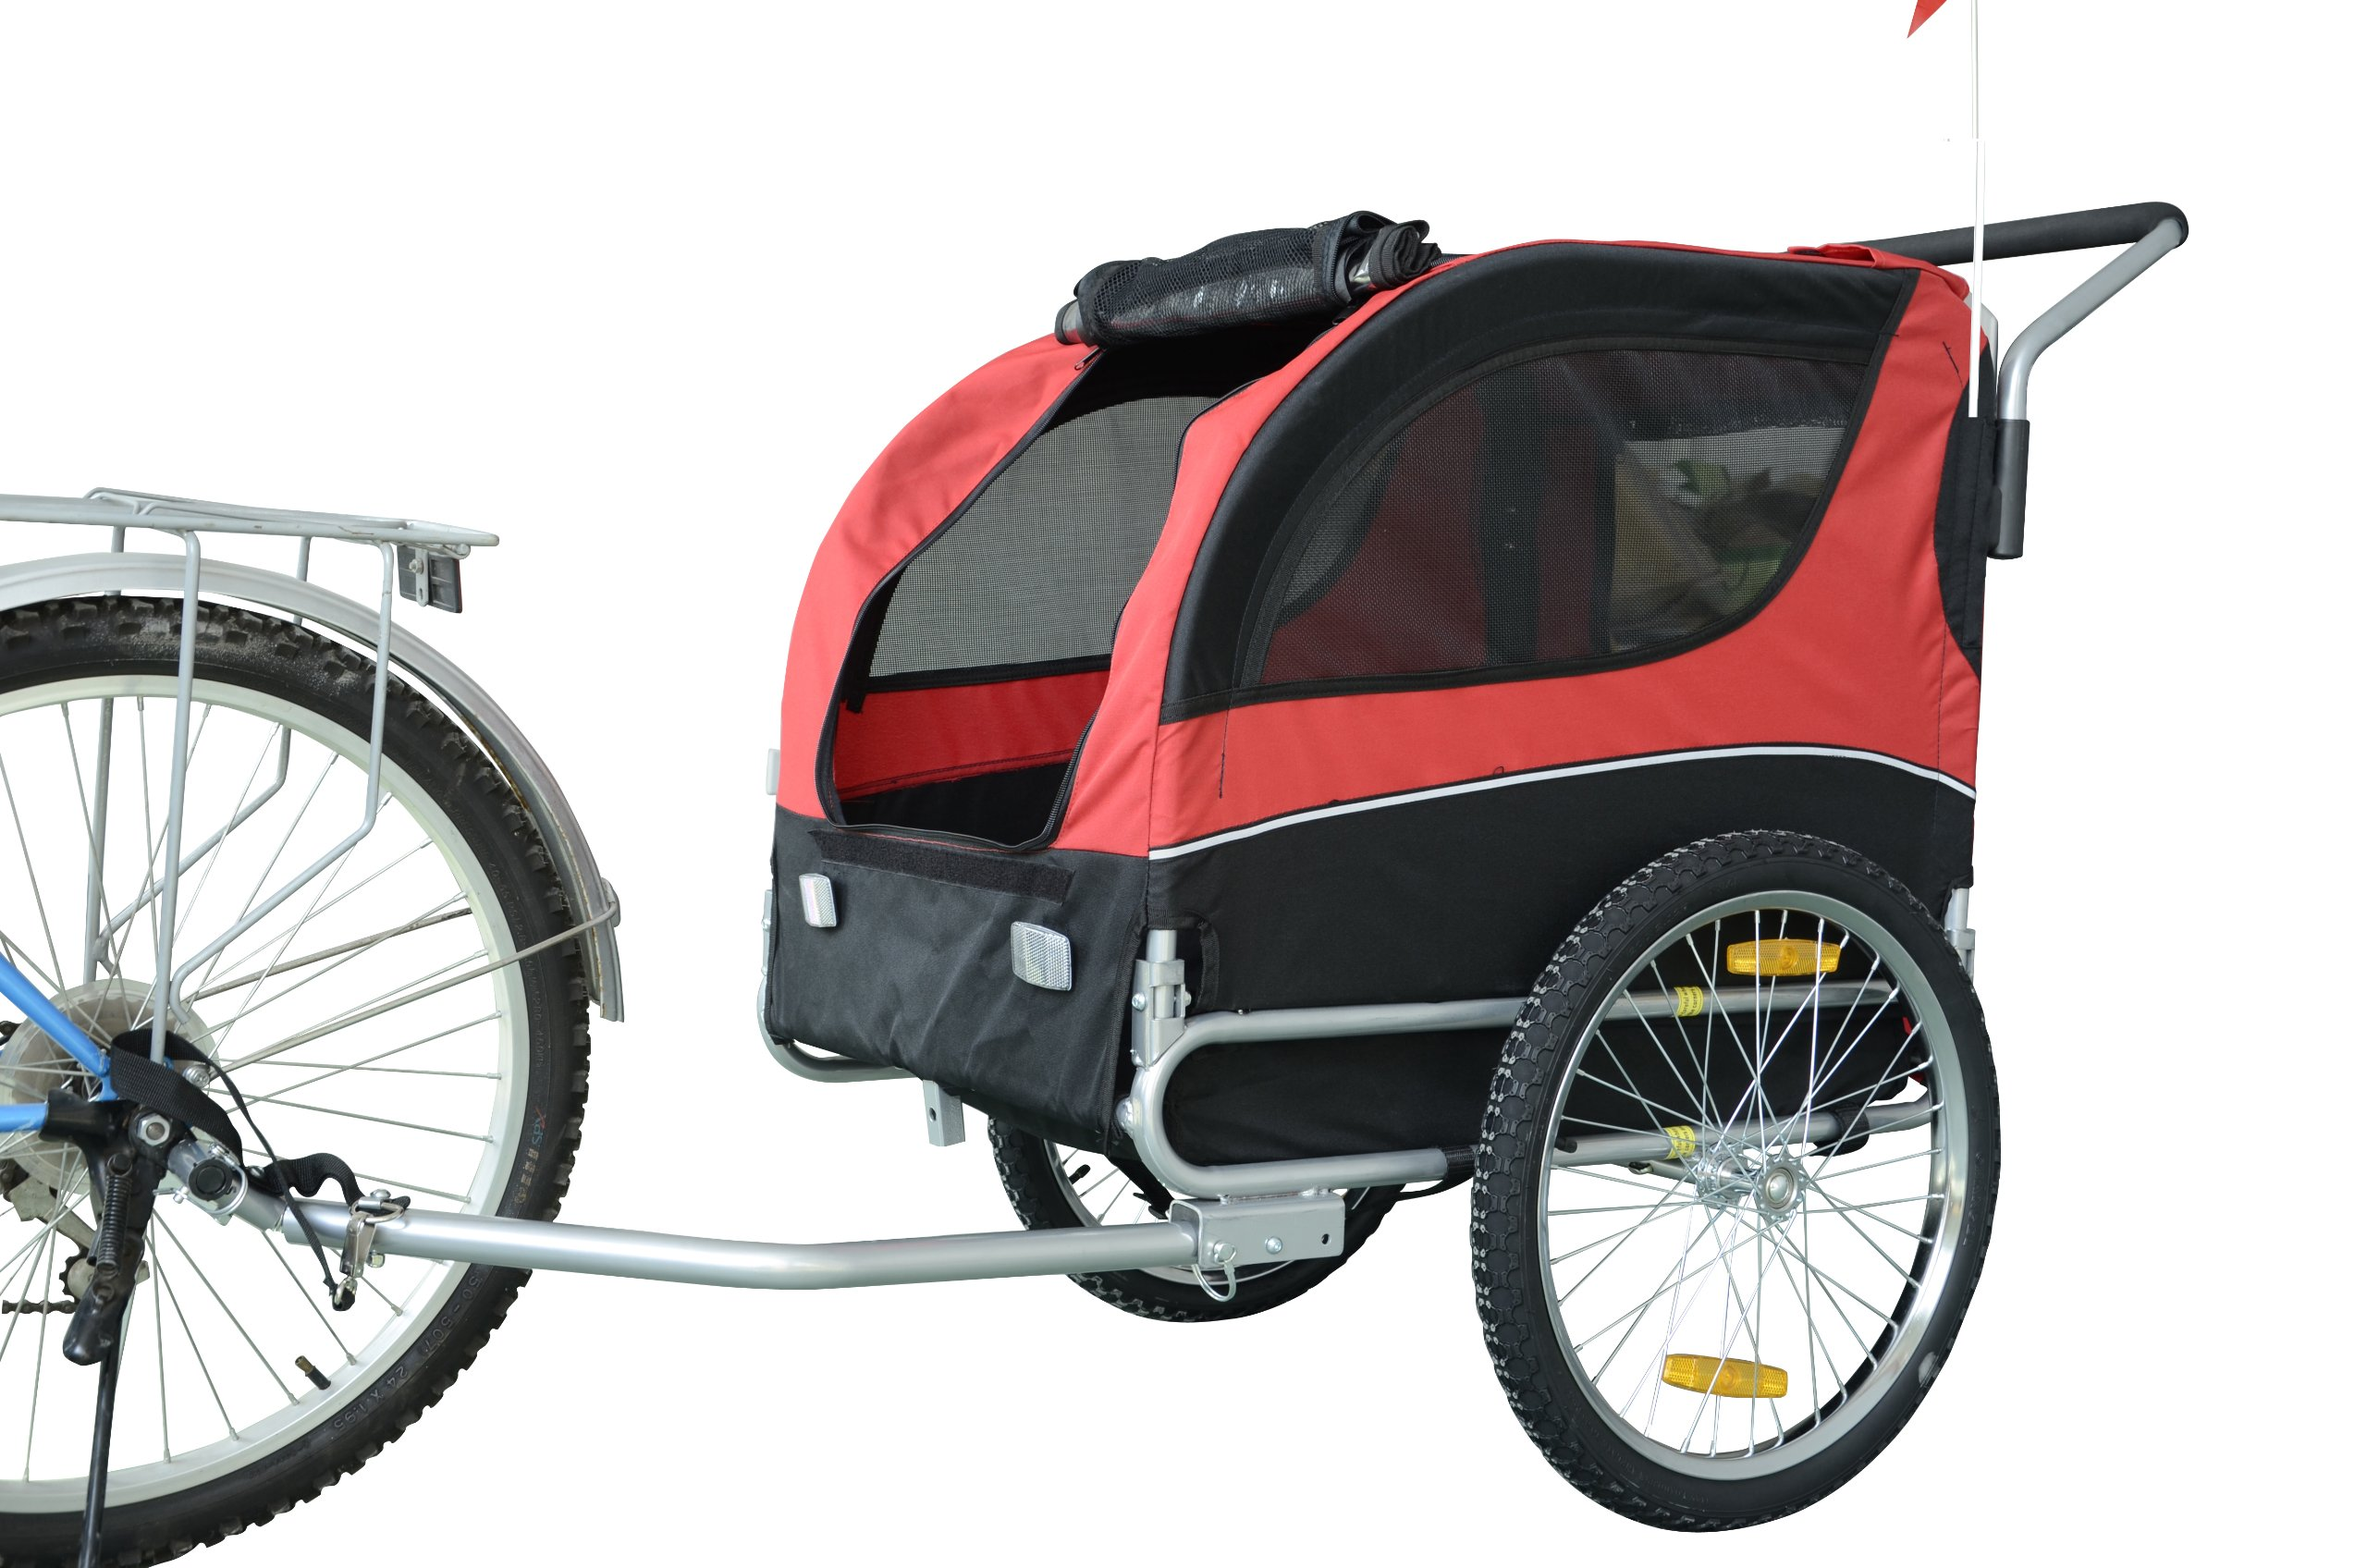 MDOG2 MK0065A Comfy Pet Bike Trailer, Red/Black